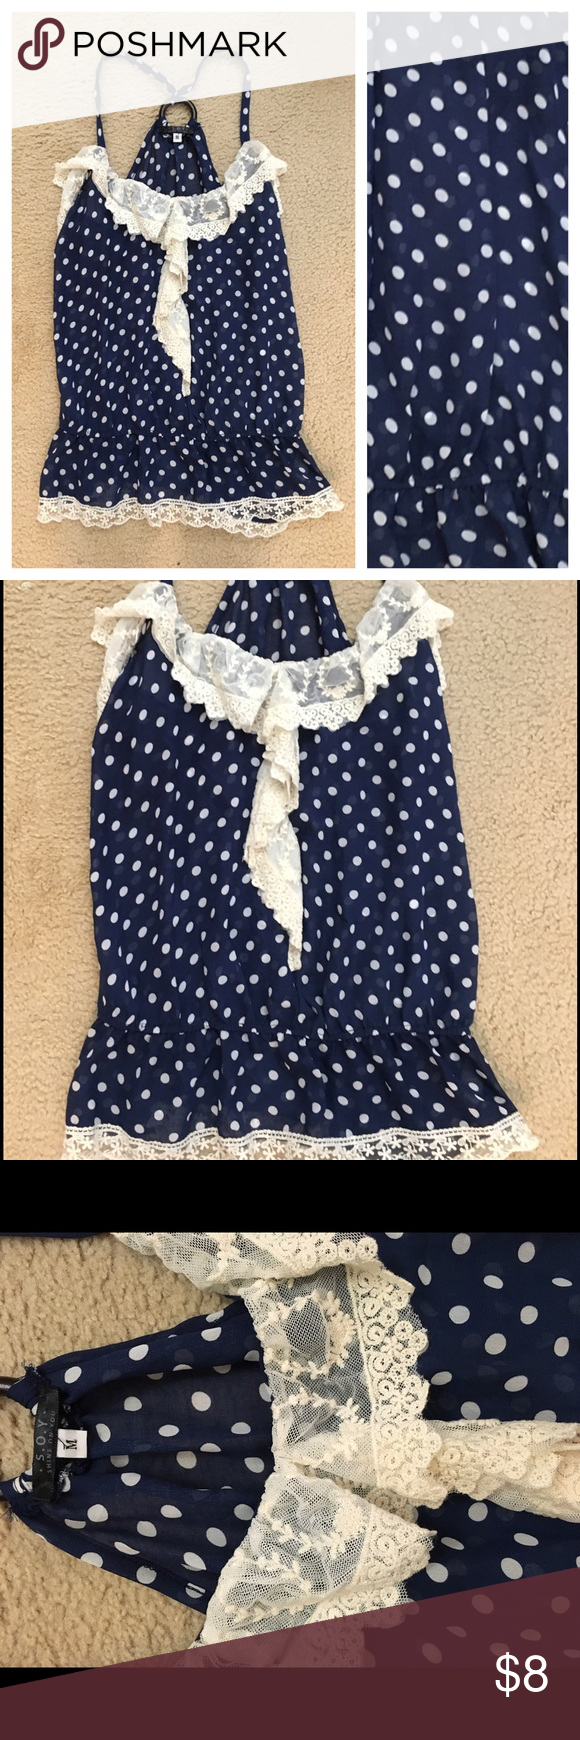 Adorable semi sheer polka dot top Adorable polka dot top. Size medium. In excellent condition. I just had a baby so I am currently not modeling any items. Thank you for understanding! ❤️ S.O.Y Tops